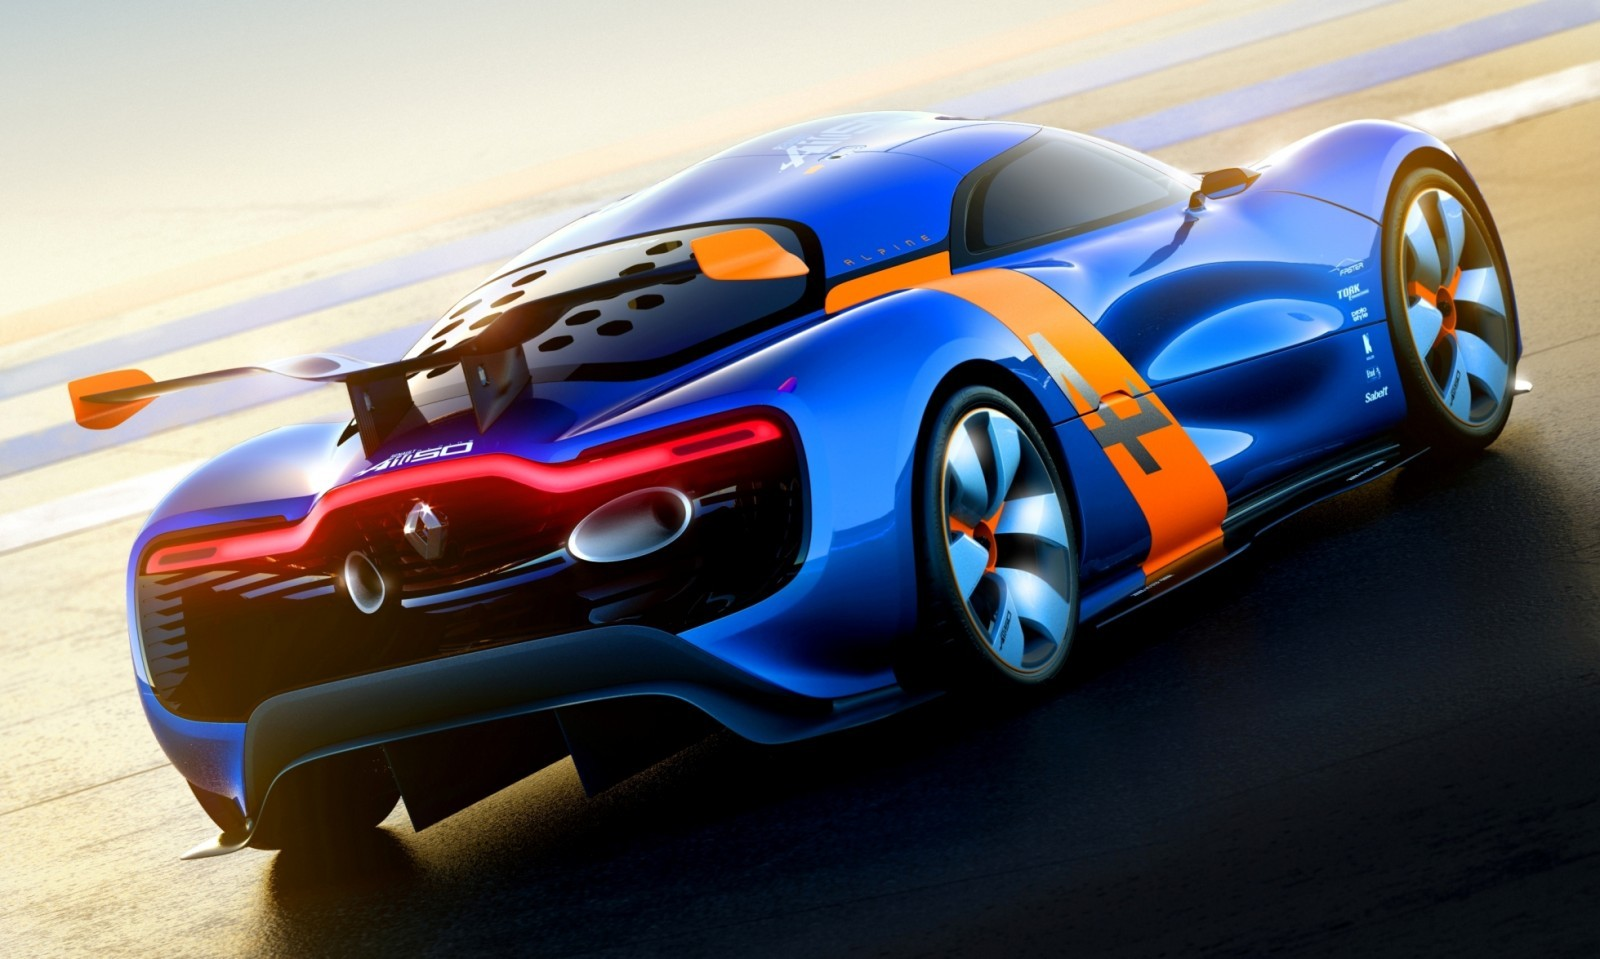 Concept Flashback - 2012 Renault Alpine A110-50 A Blend of M64 and A110 Berlinette 40